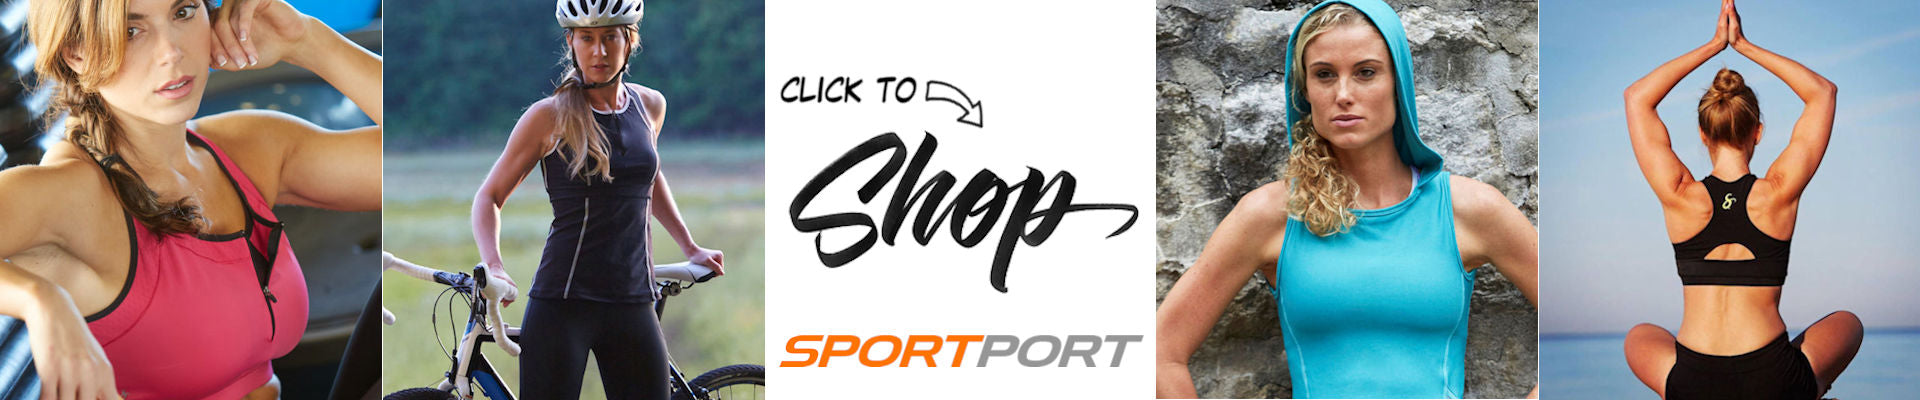 shop sportport womens activewear